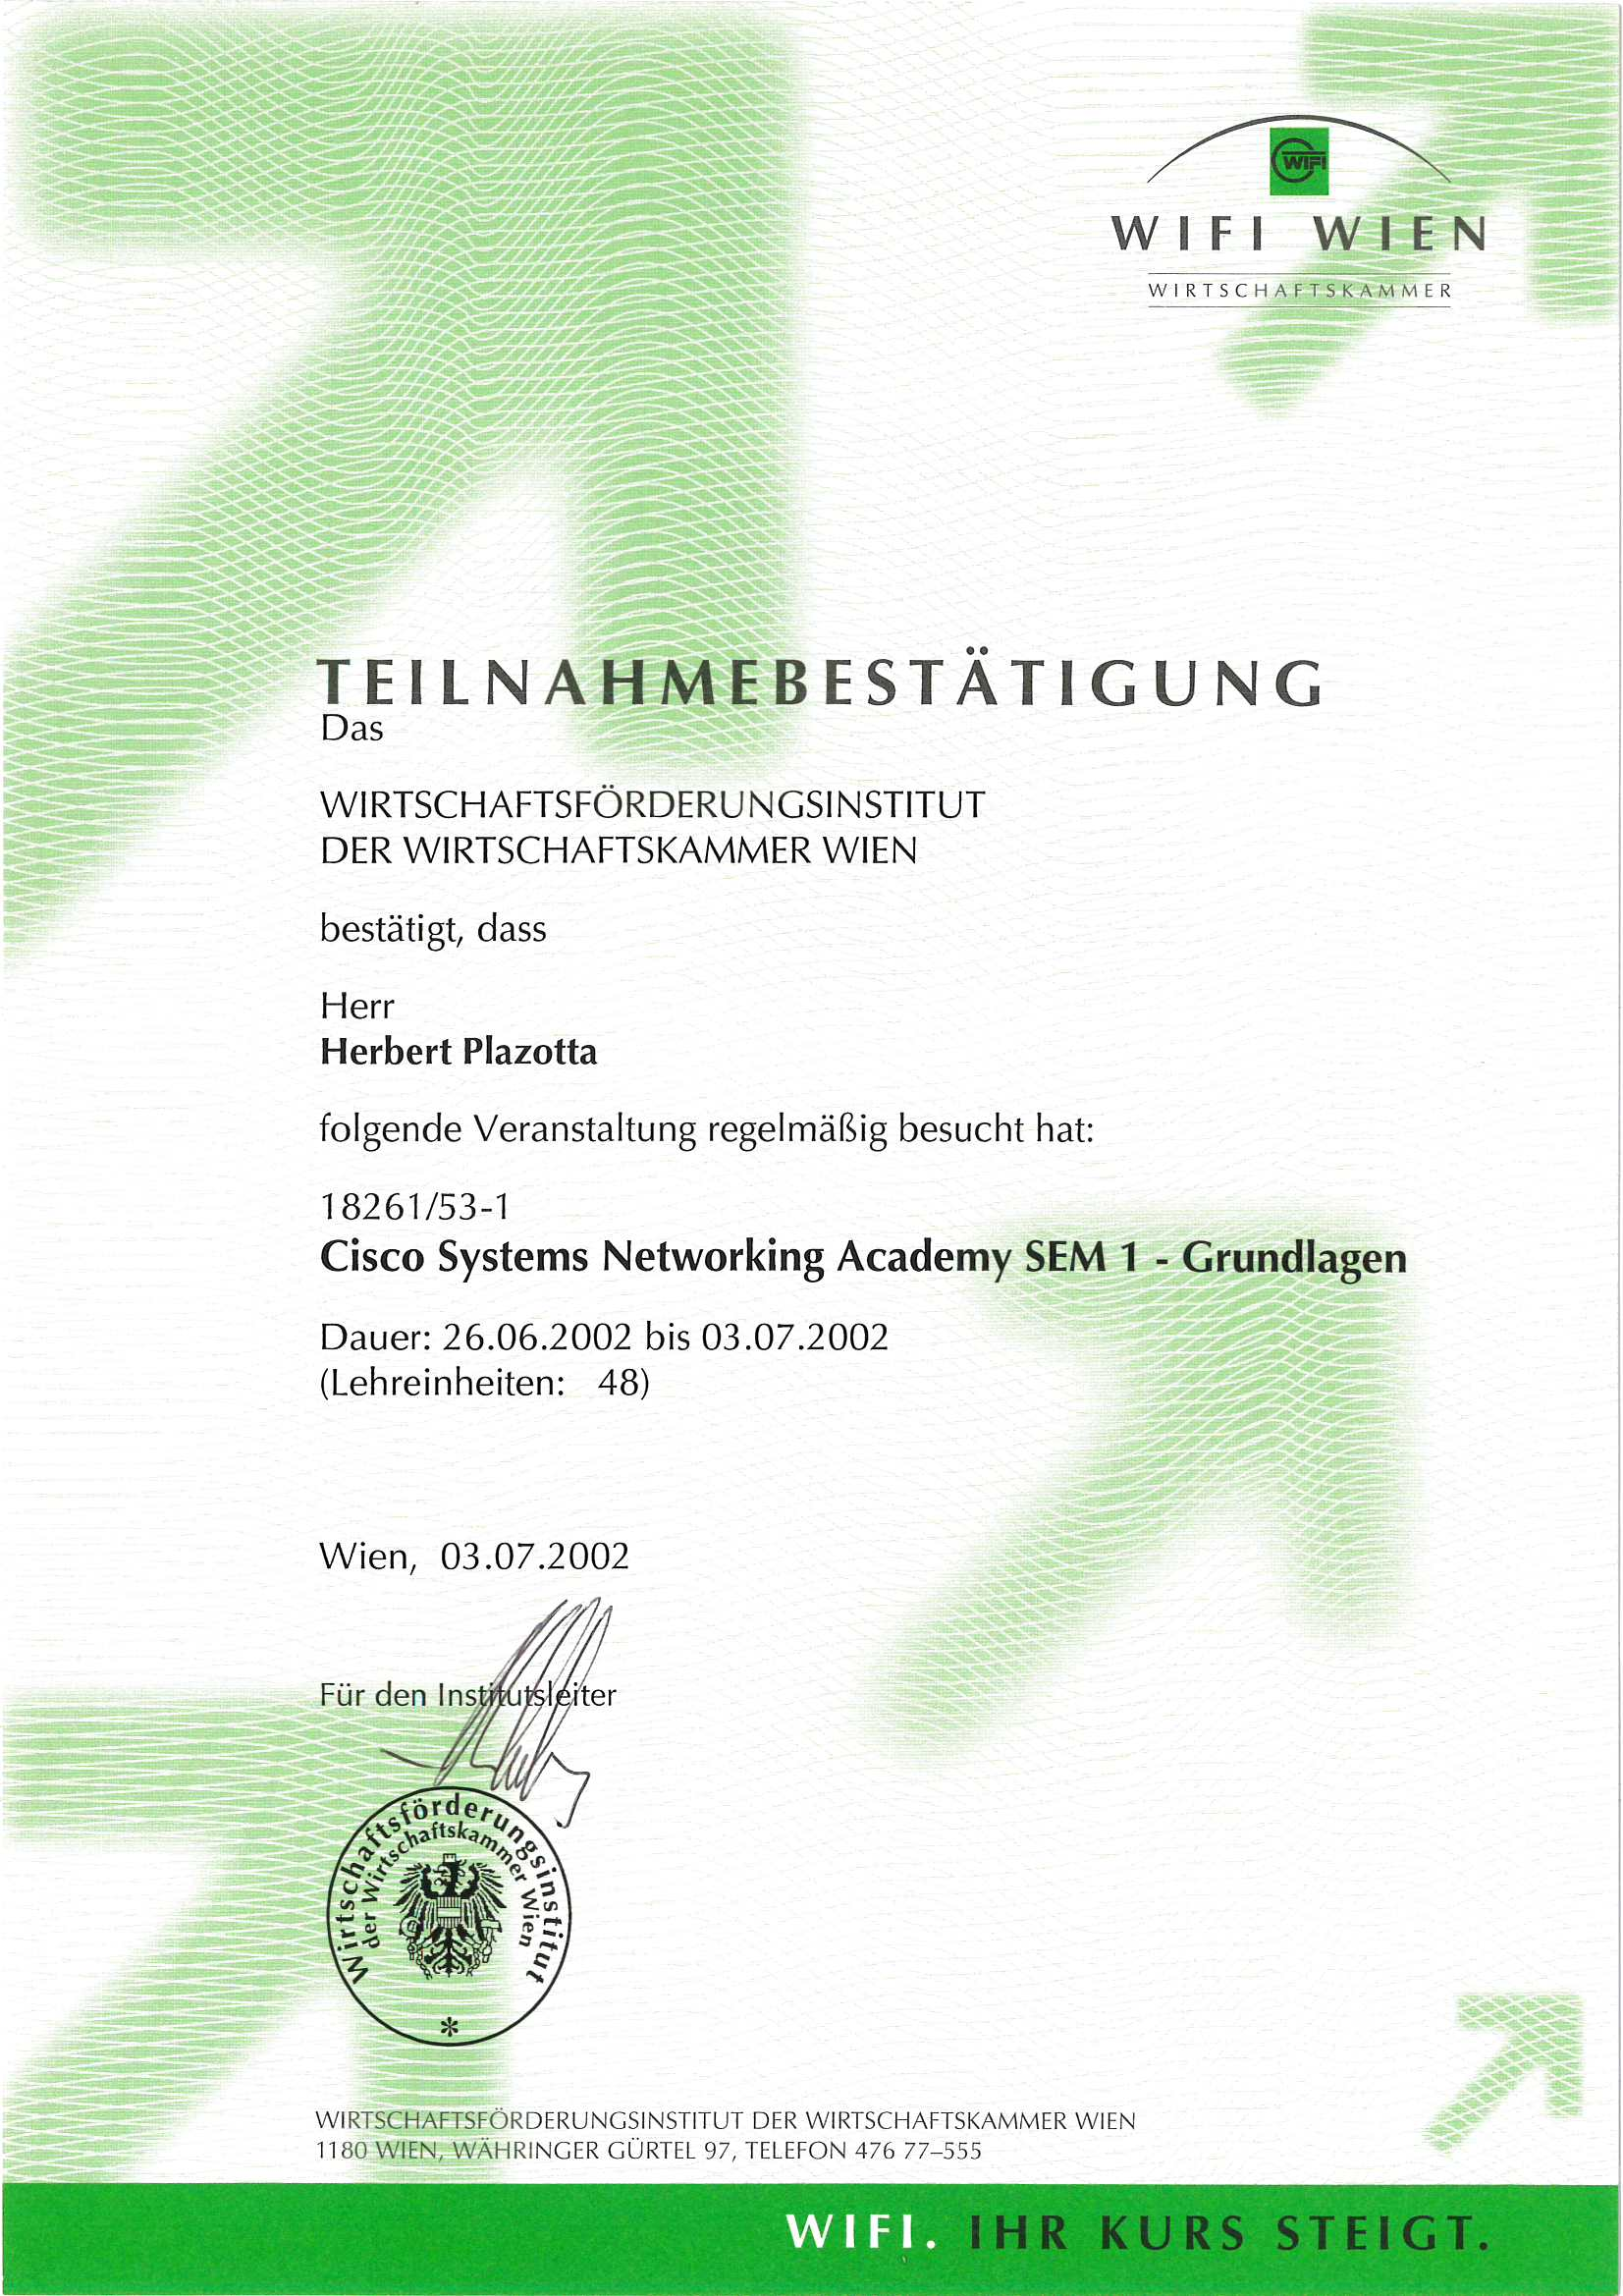 Cisco Networking Academy Grundlagen.jpg